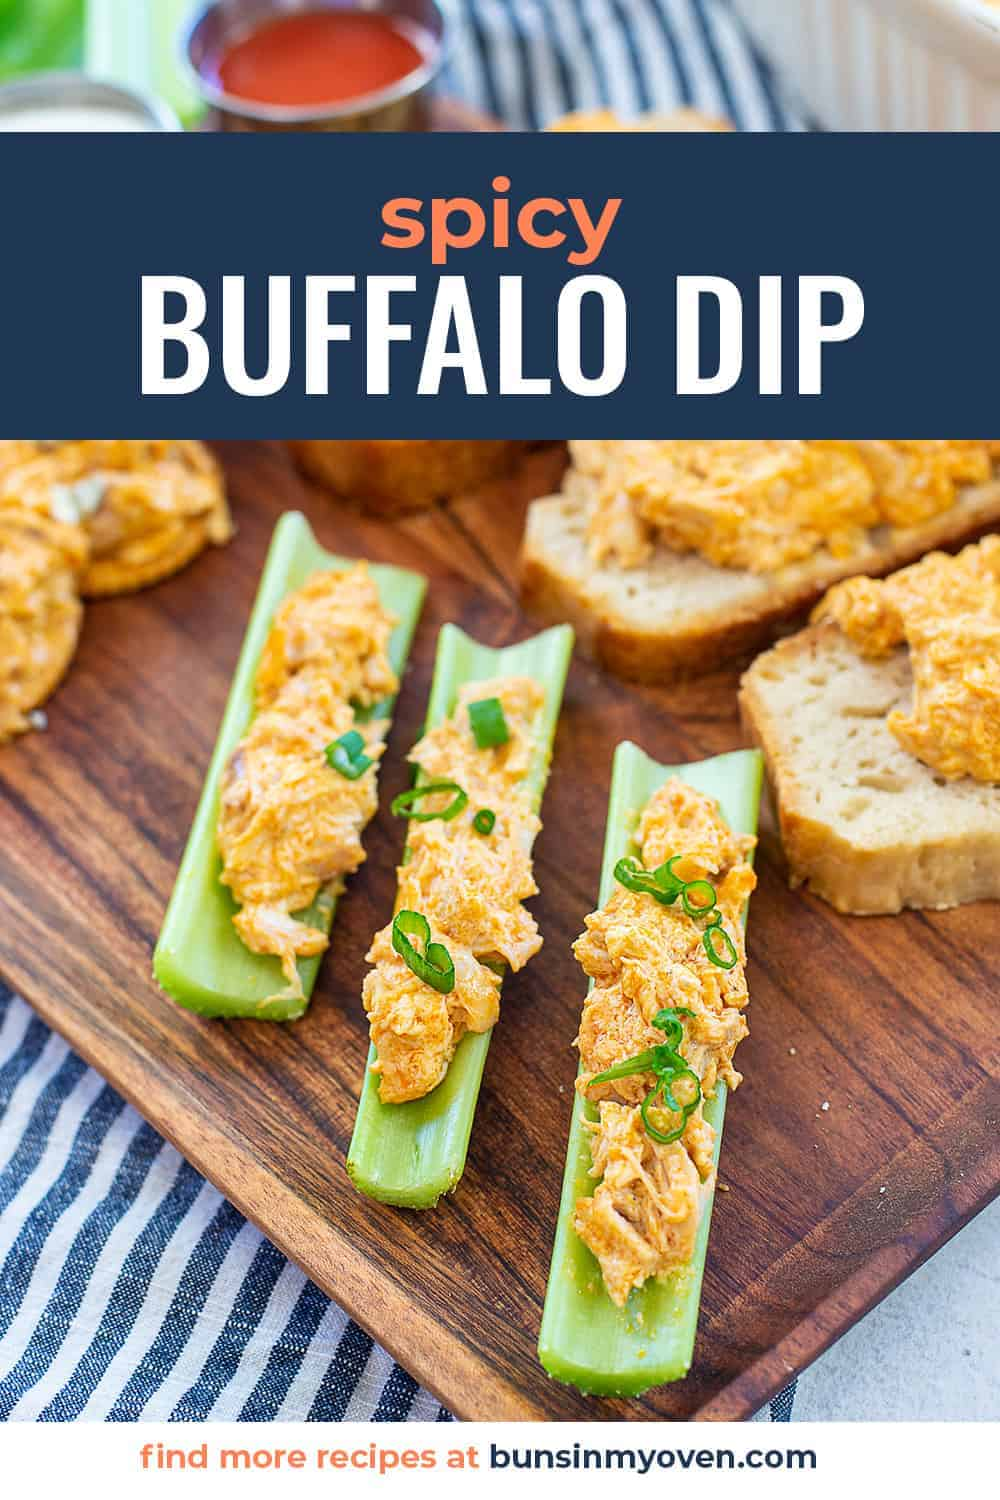 celery filled with buffalo chicken dip on wooden board.